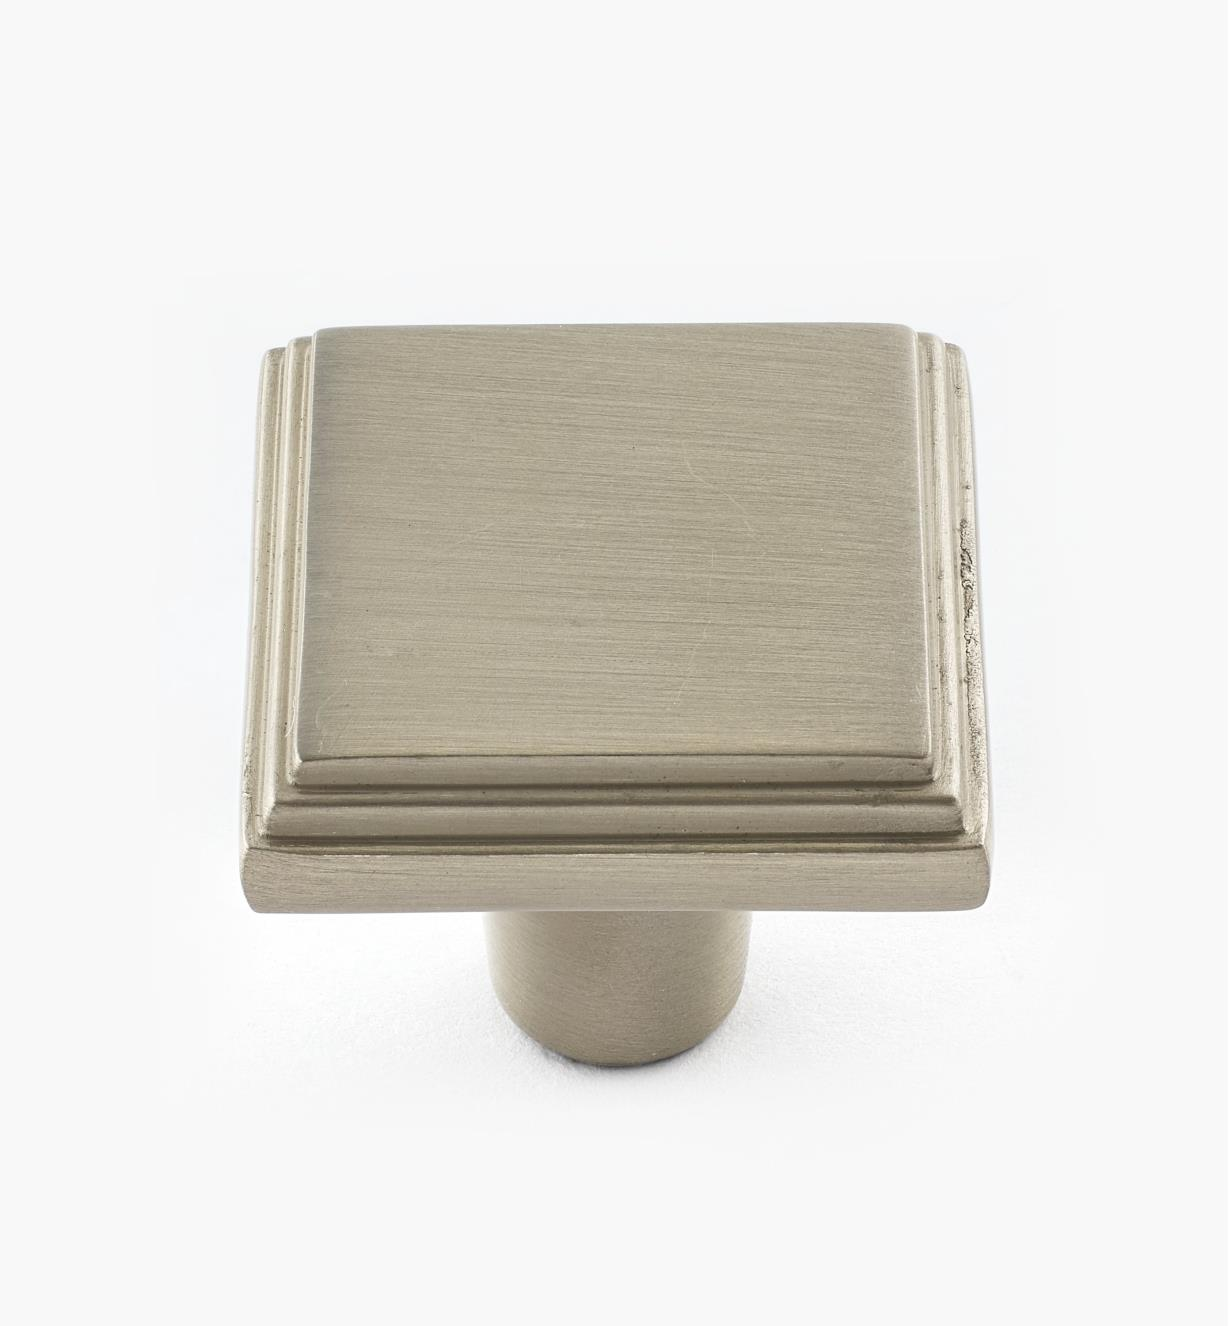 02A3911 - Manor Satin Chrome Knob